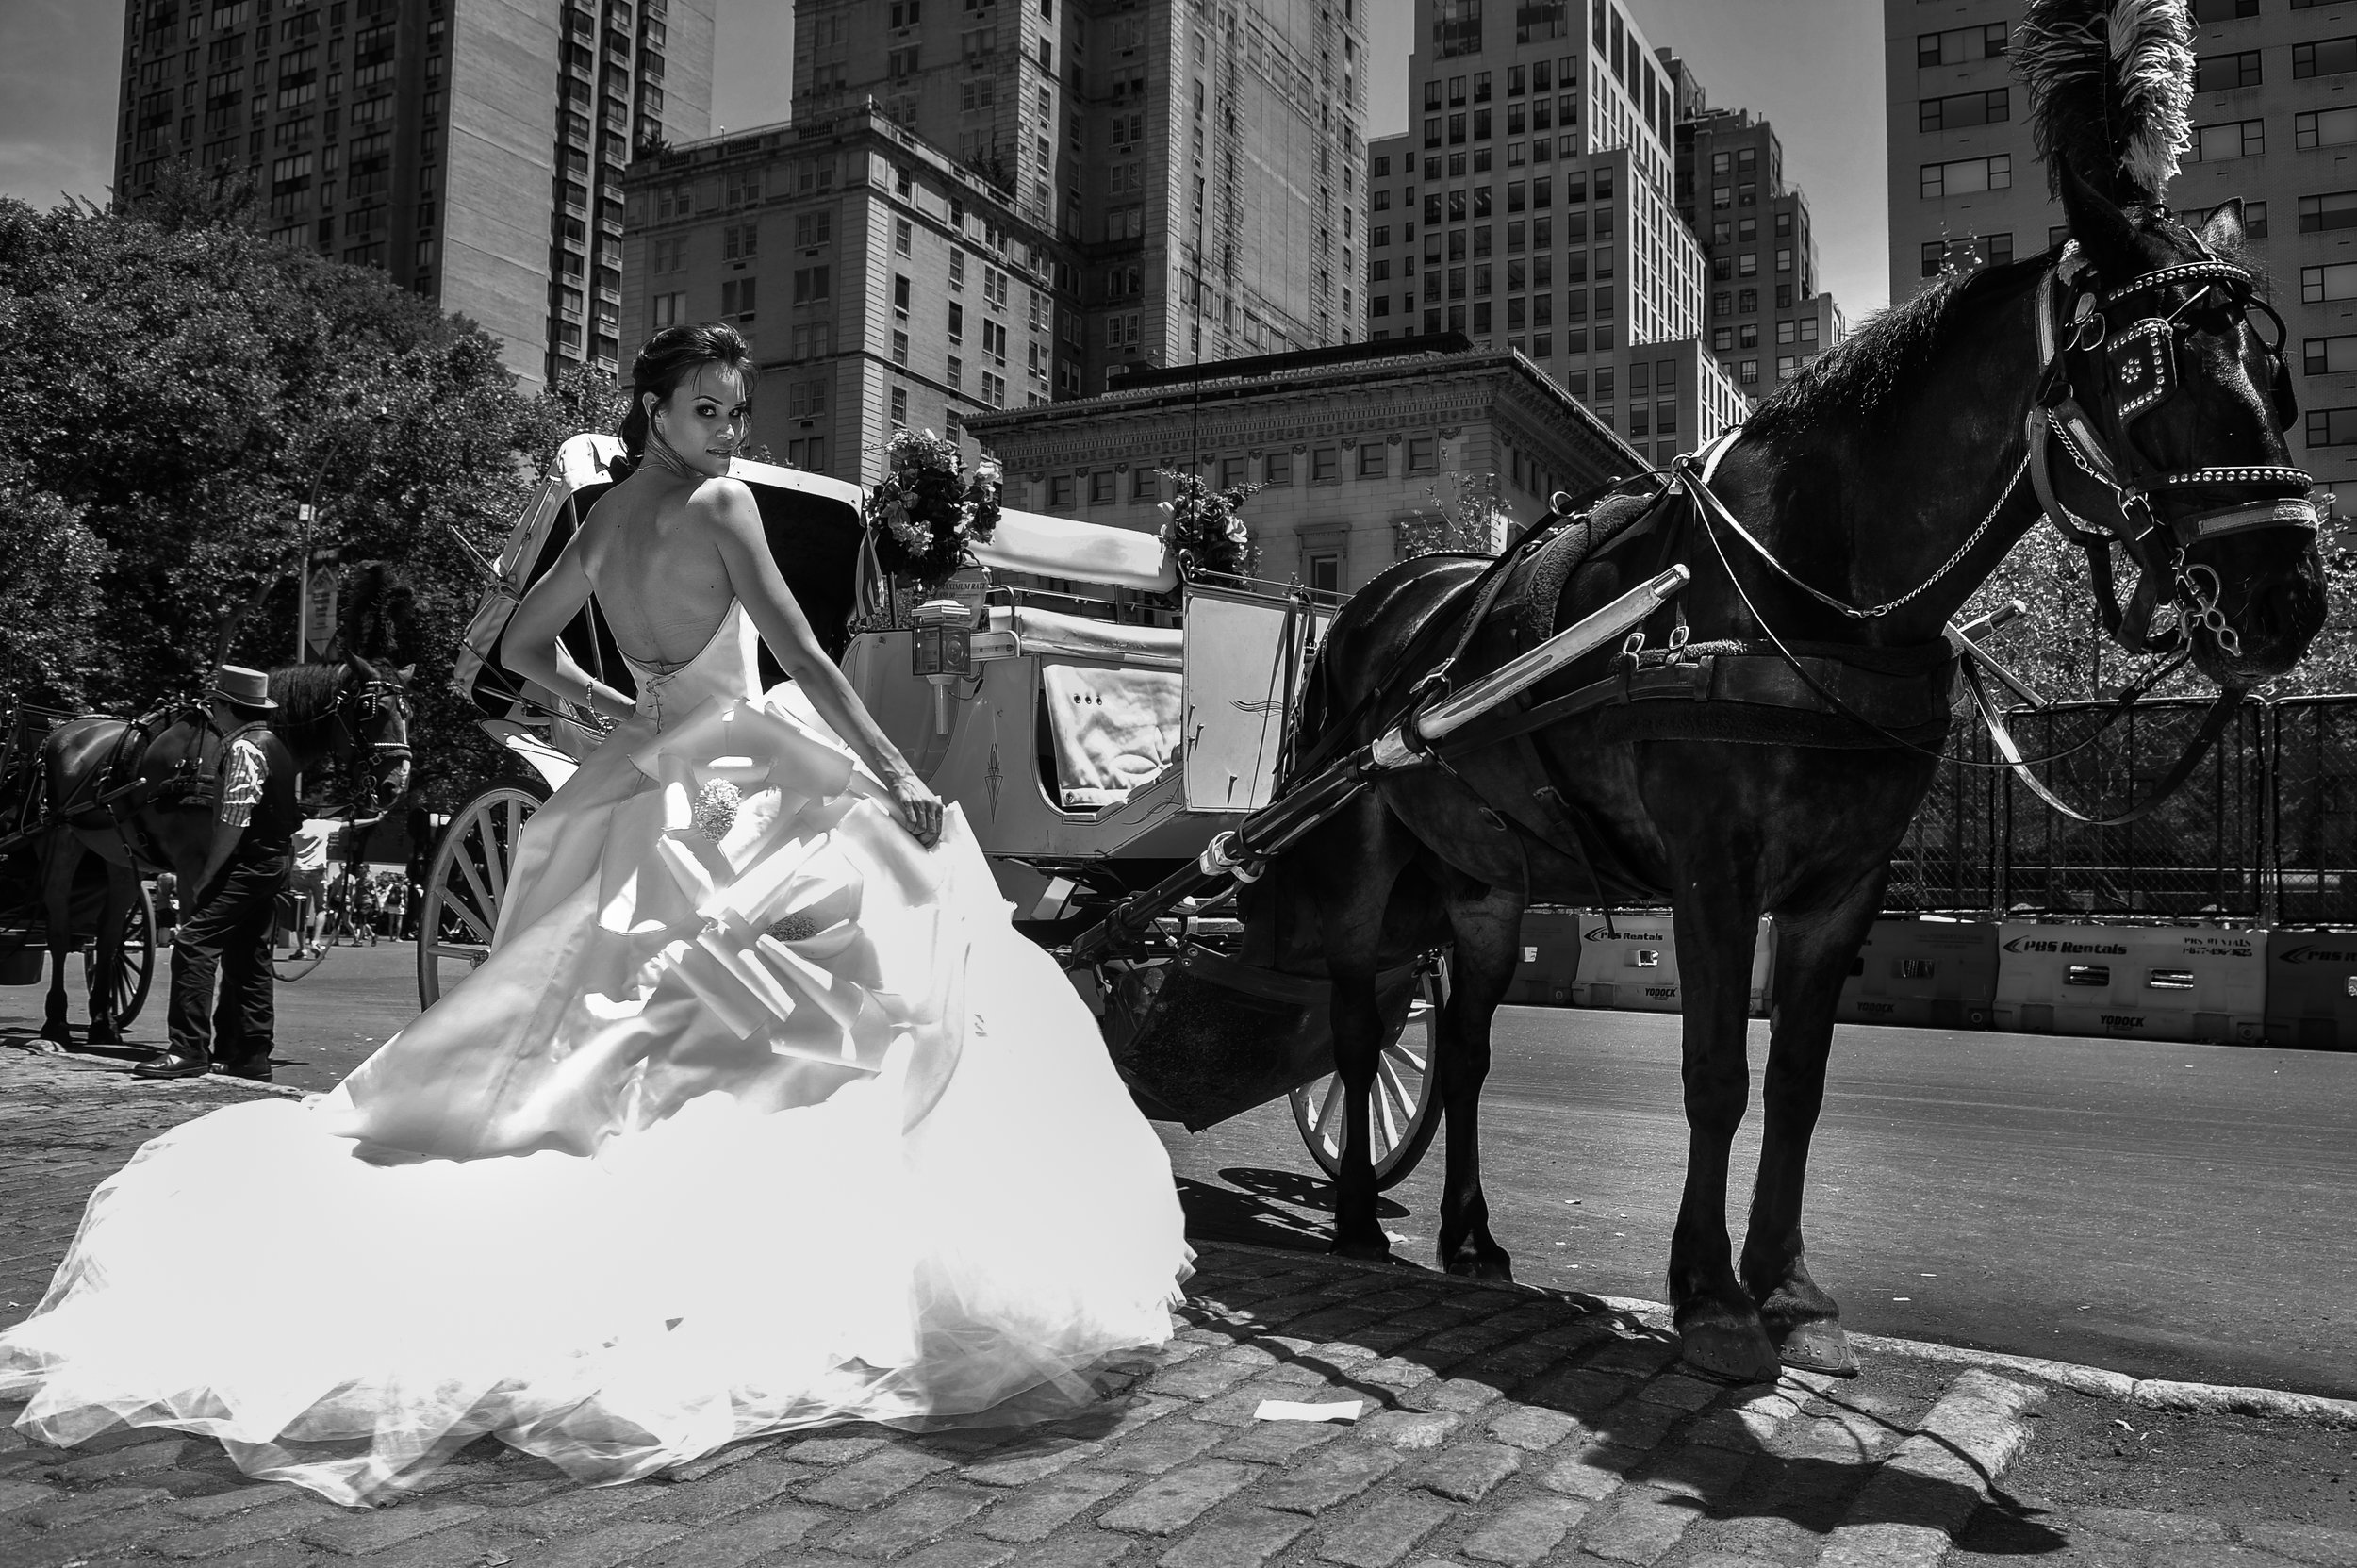 NEW YORK - June 13: Model Kalyn Hemphill pose in front of horse carriage at the Irina Shabayeva SS 2016 Bridal collection photoshoot on June 13, 2015 in New York, USA